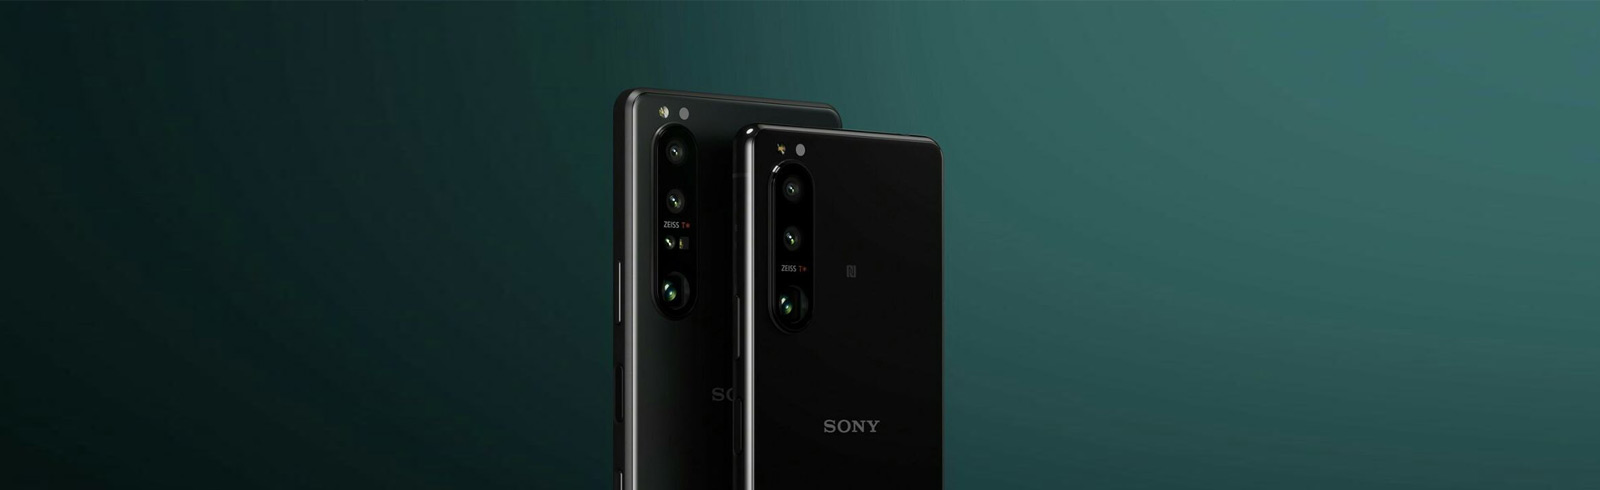 Sony Xperia 1 III and Sony Xperia 5 III go official